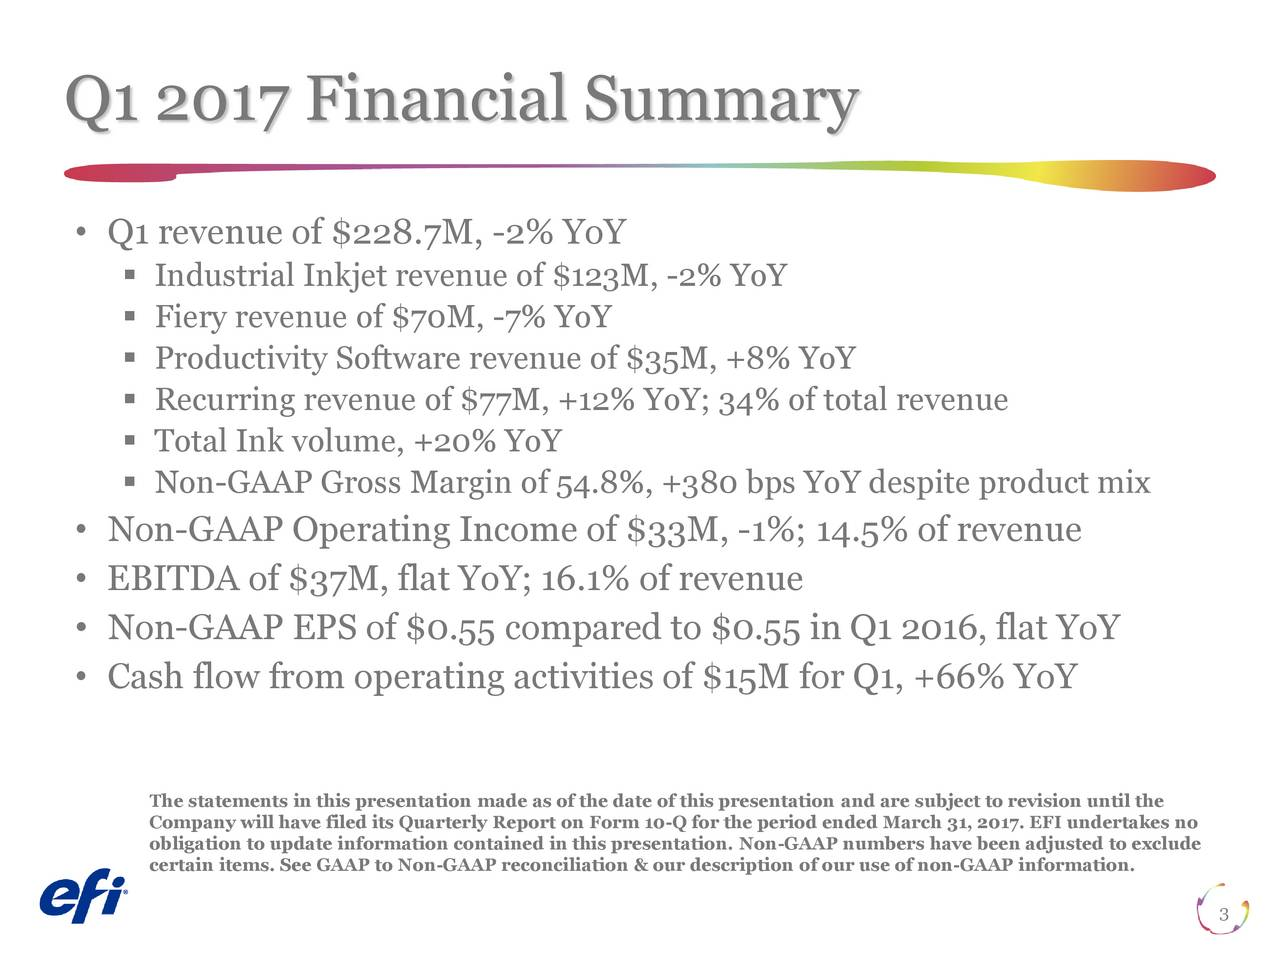 Q1 revenue of $228.7M, -2% YoY Industrial Inkjet revenue of $123M, -2% YoY Fiery revenue of $70M, -7% YoY Productivity Software revenue of $35M, +8% YoY Recurring revenue of $77M, +12% YoY; 34% of total revenue Total Ink volume, +20% YoY Non-GAAP Gross Margin of 54.8%, +380 bps YoY despite product mix Non-GAAP Operating Income of $33M, -1%; 14.5% of revenue EBITDA of $37M, flat YoY; 16.1% of revenue Non-GAAP EPS of $0.55 compared to $0.55 in Q1 2016, flat YoY Cash flow from operating activities of $15M for Q1, +66% YoY The statements in this presentation made as of the date of this presentation and are subject to revision until the obligation to update information contained in this presentation. Non-GAAP numbers have been adjusted to excludeo certain items. See GAAP to Non-GAAP reconciliation & our description of our use of non-GAAP information. 3